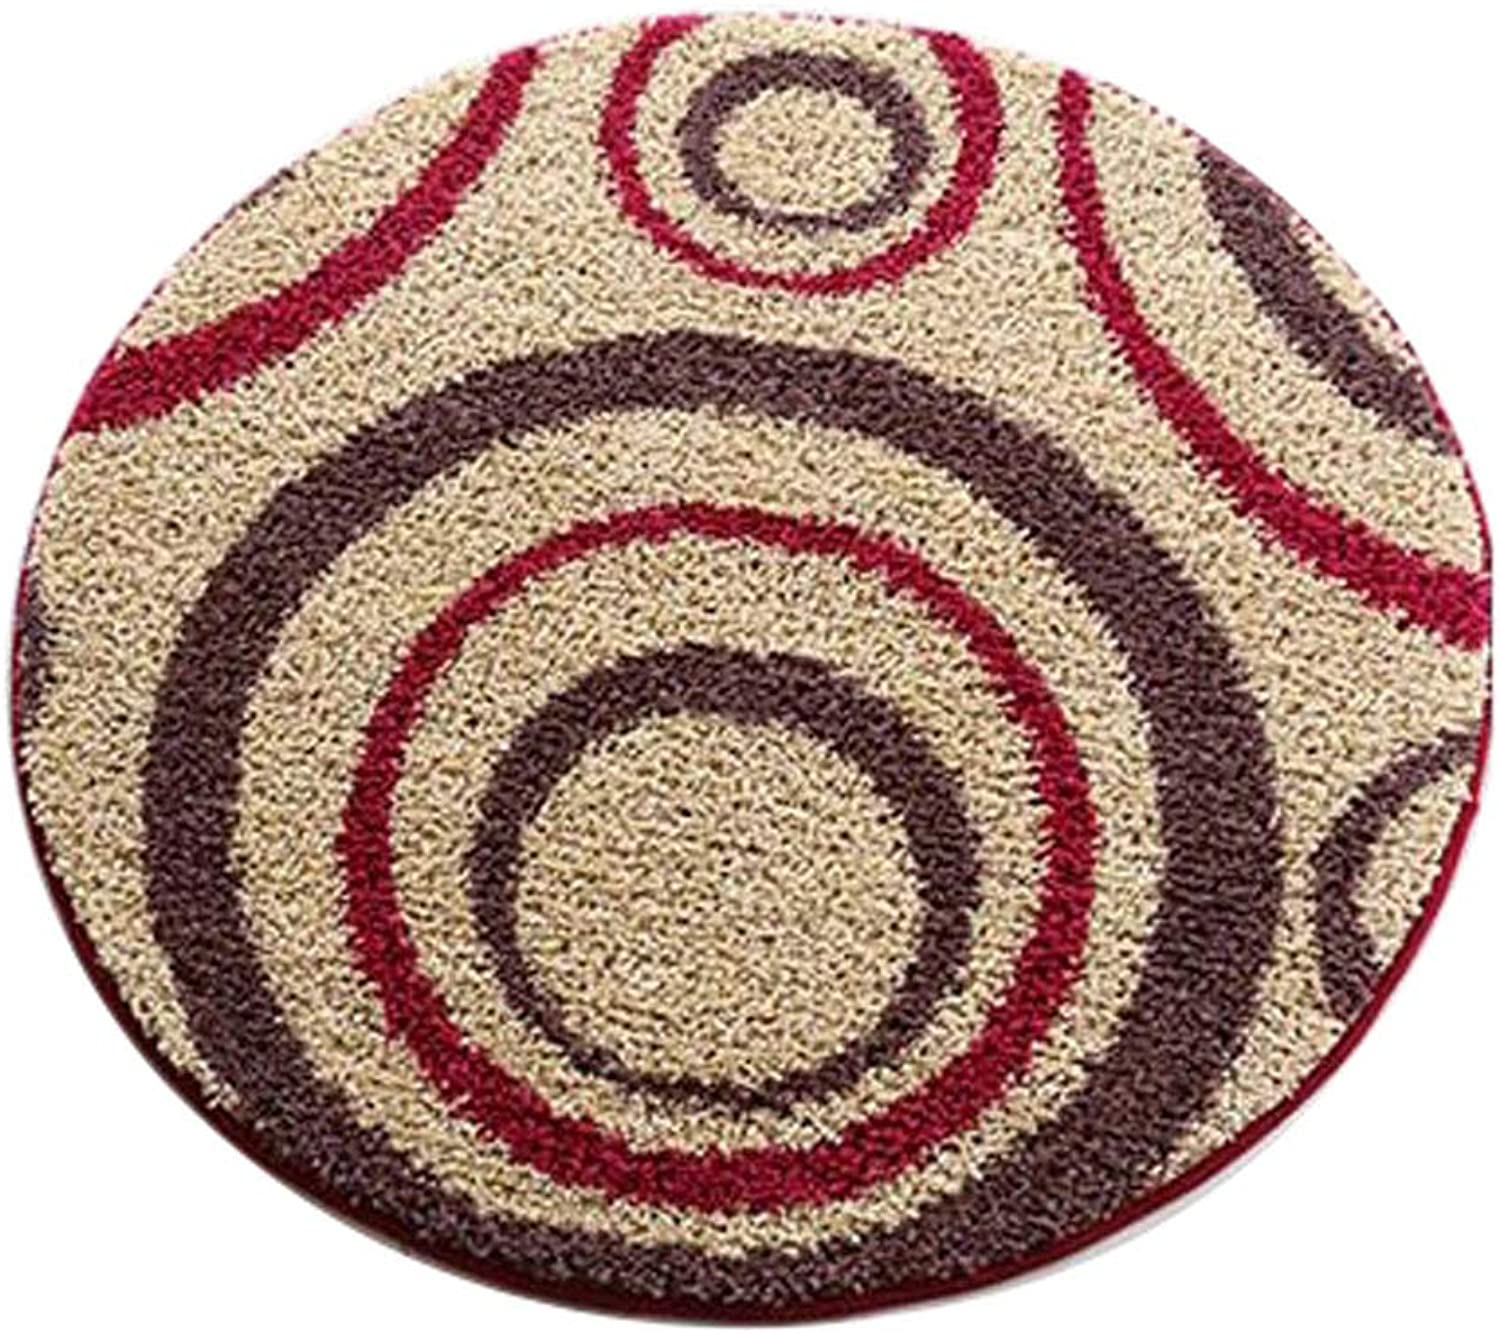 Style Door Mats Round Carpet Computer Chair Cushion Living Room Bedroom Bed Blanket Pad Table Hanging Basket Interior Decoration Bathroom Home Mat (can Be Cut)